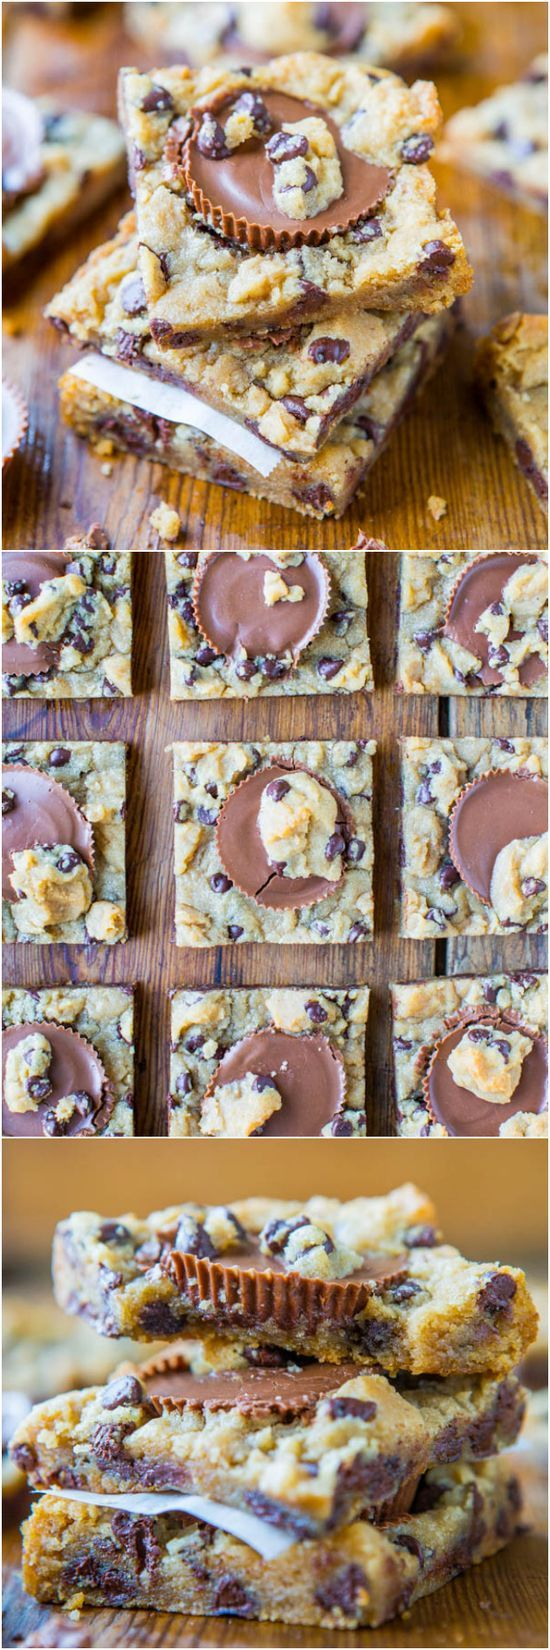 Two-Ingredient Peanut Butter Cup Chocolate Chip Cookie Dough Bars (GF) - The easiest bars ever and no one will ever guess it! So #health Dessert #healthy Dessert #Dessert| http://your-perfect-dessert.lemoncoin.org